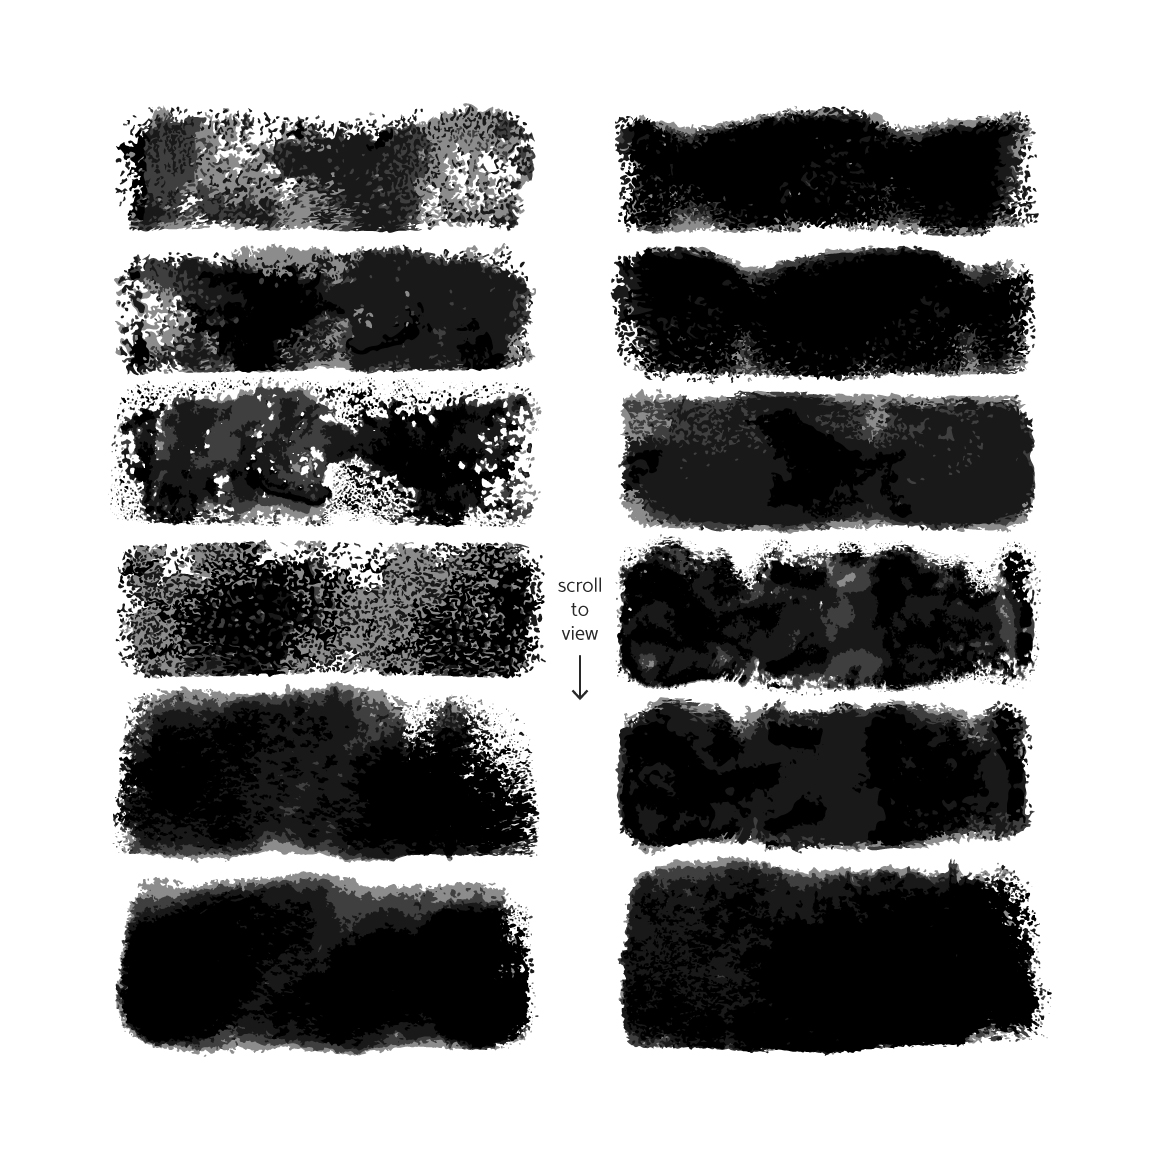 Roller Brushes for Illustrator example image 7